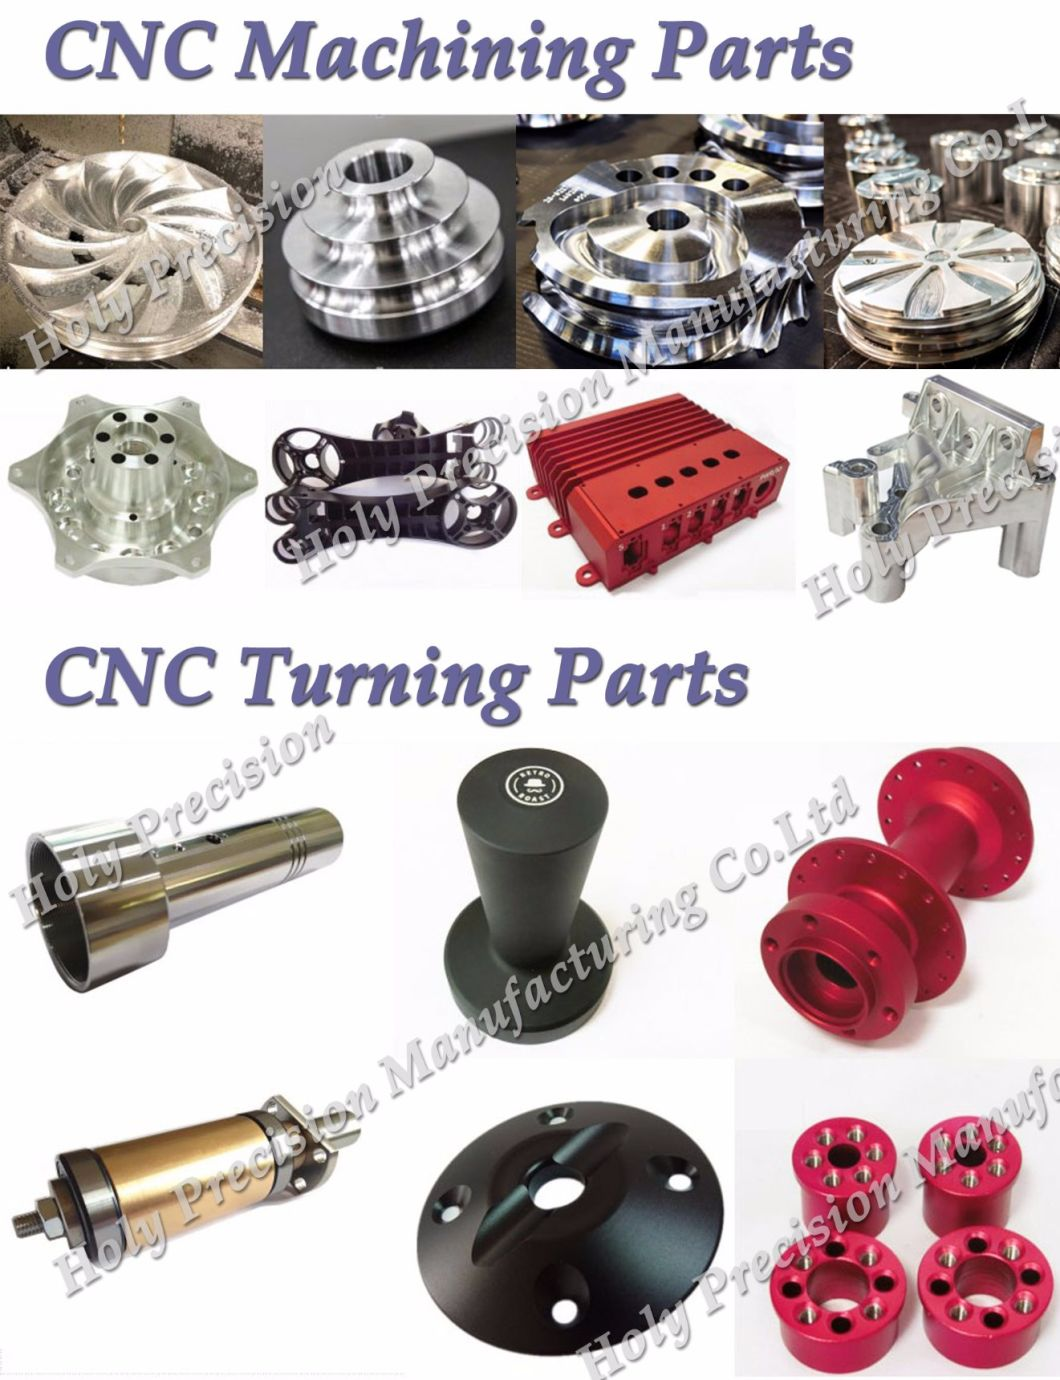 Hot Sale Machining Parts Precision Turned Parts Machine Components According to Drawings